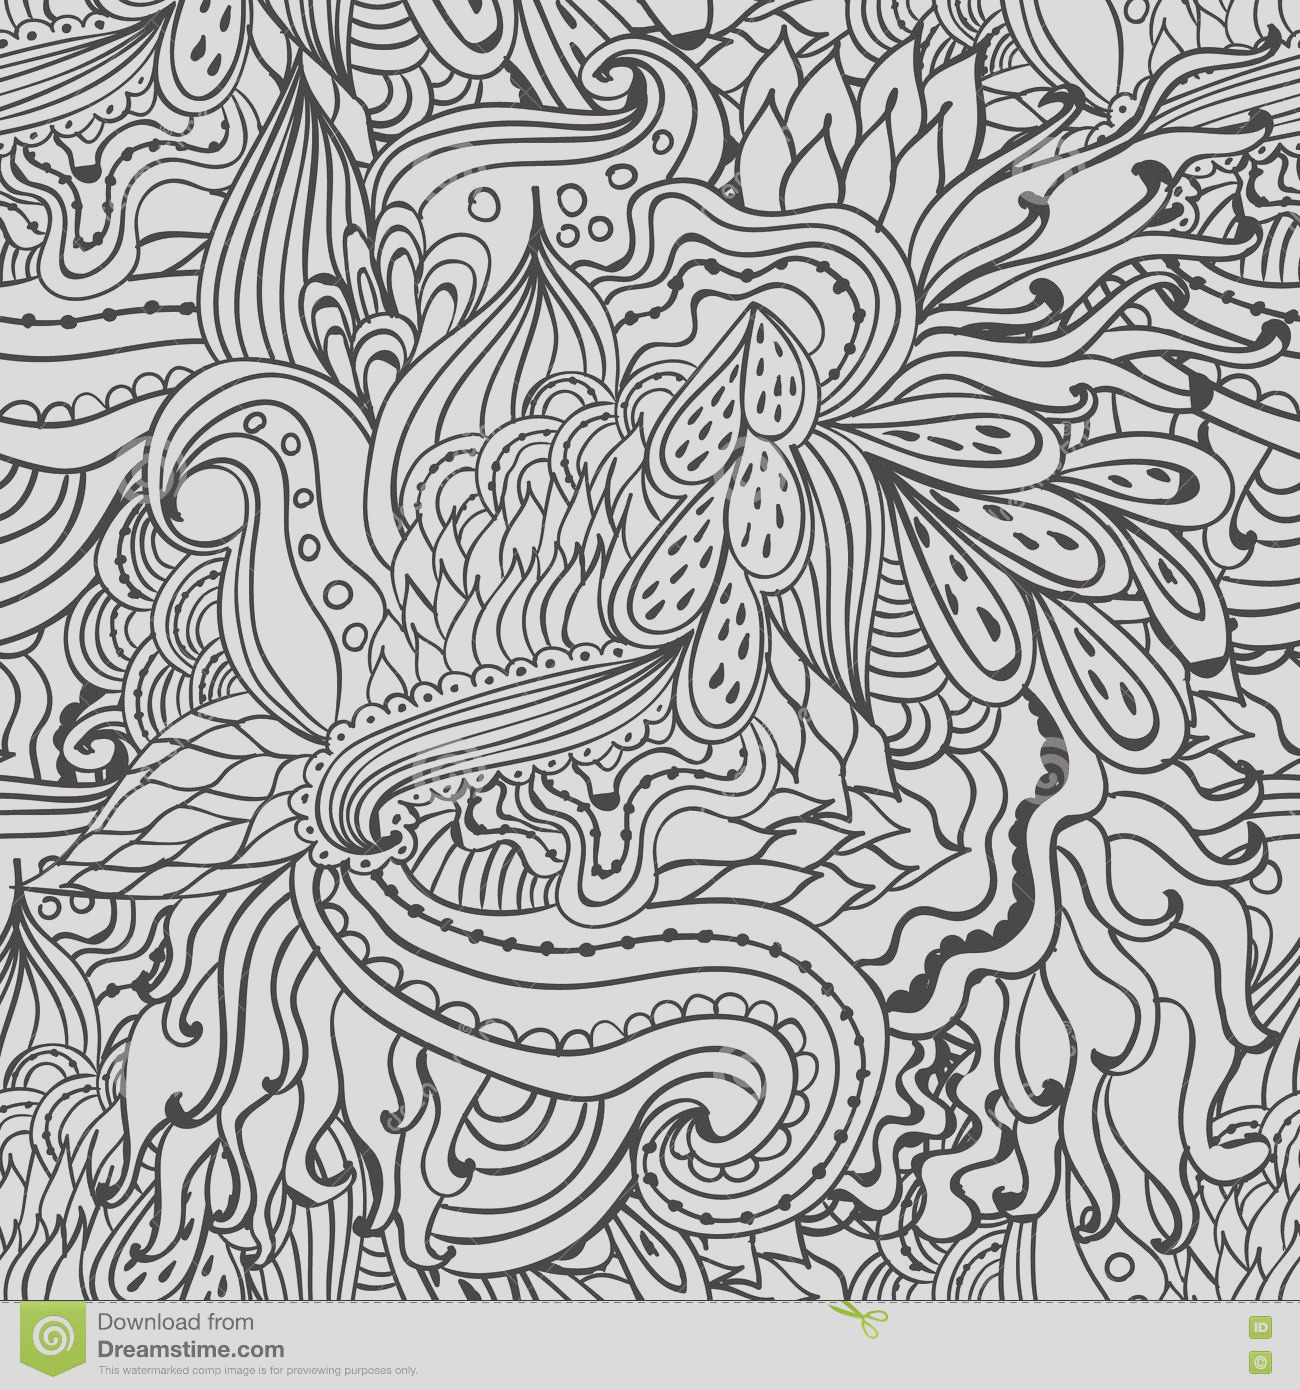 stock illustration coloring pages adults decorative hand drawn doodle nature ornamental curl vector sketchy seamless pattern book image